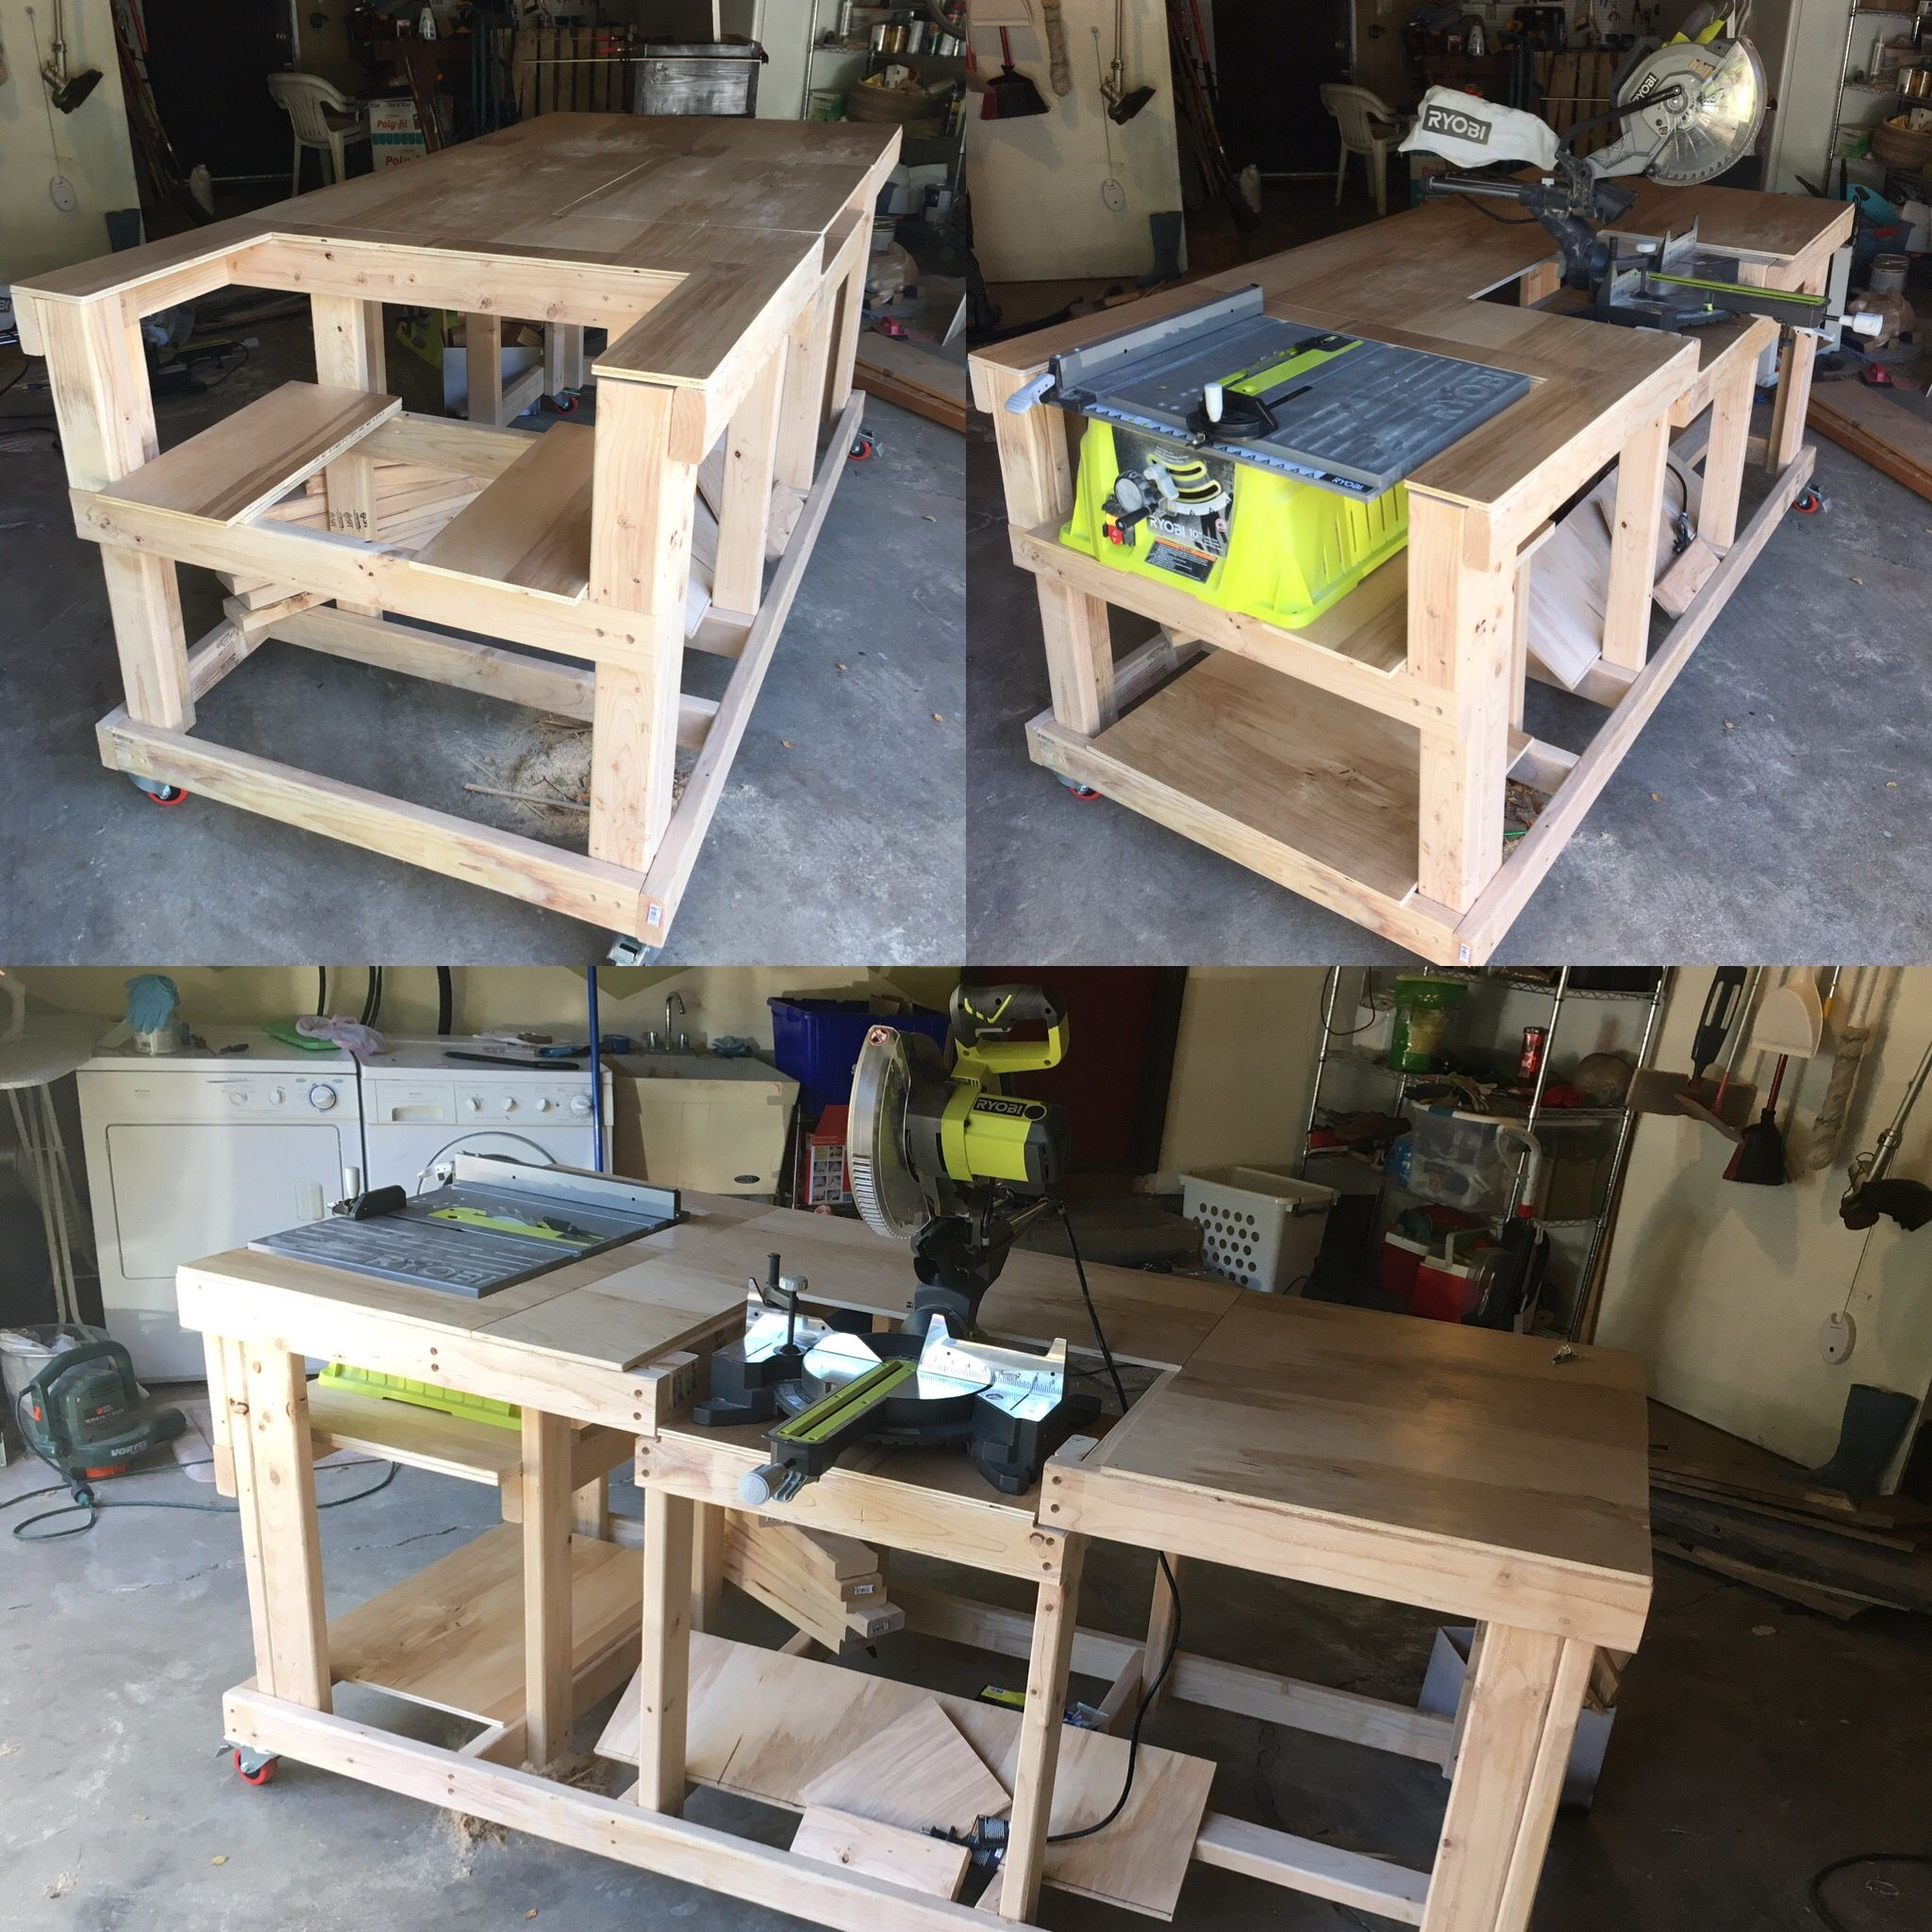 Woodworking Table Ideas Quick And Easy Mobile Workstation With Table Saw And Miter